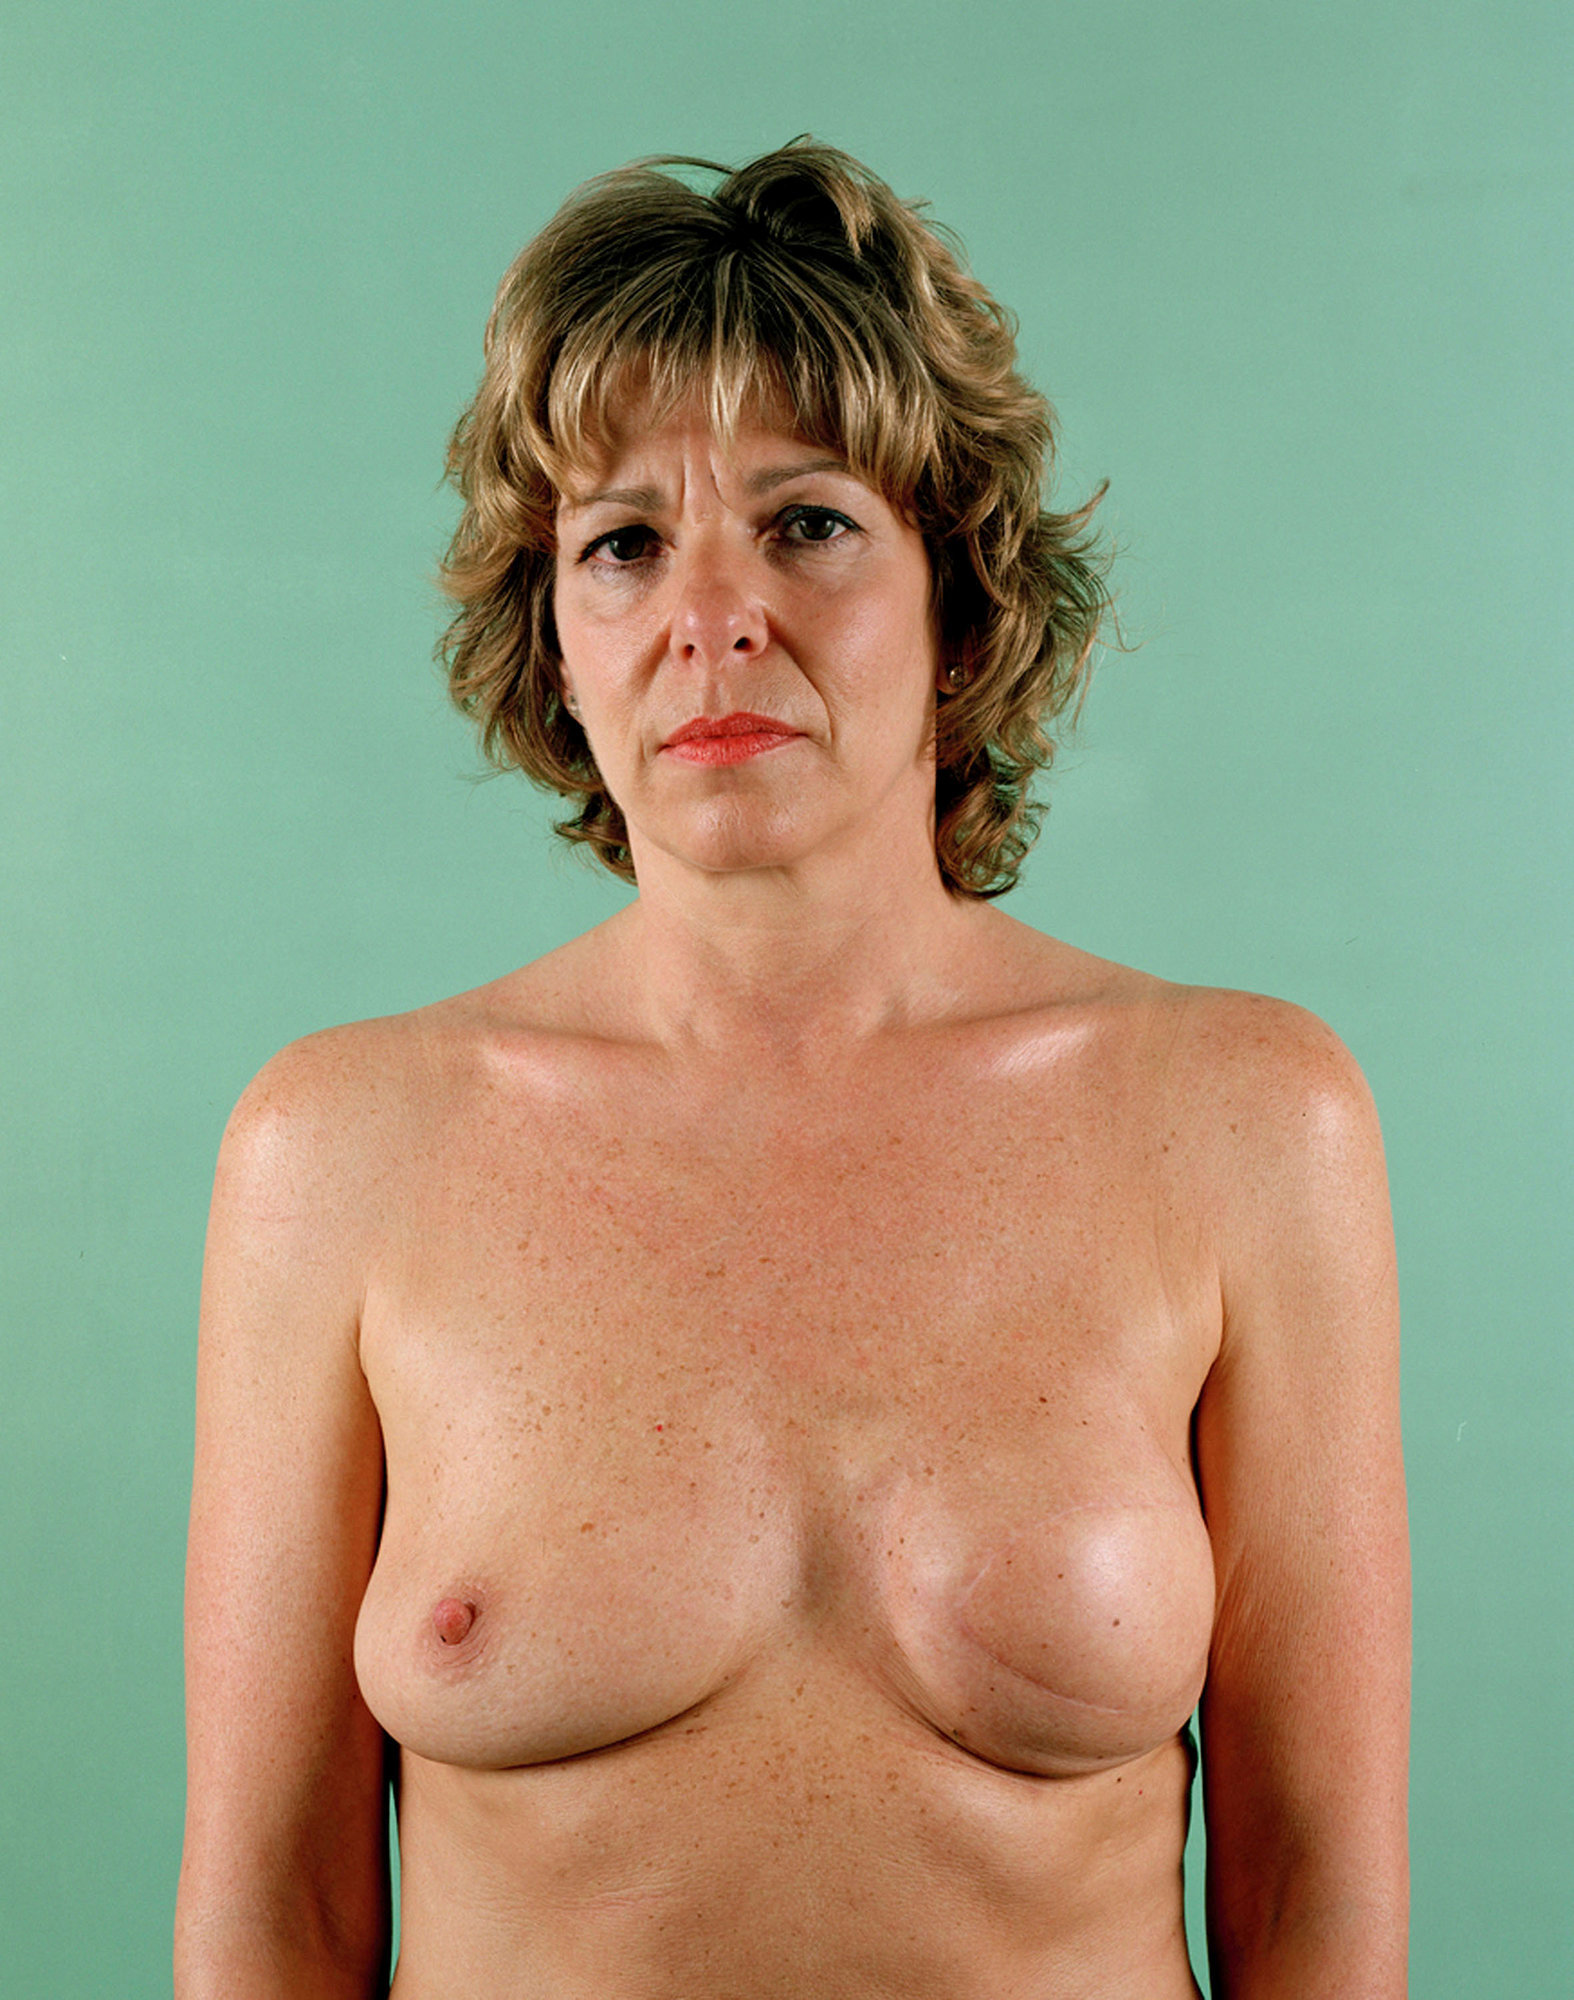 Juliet Price, aged 47.Breast Cancer Series.jpg